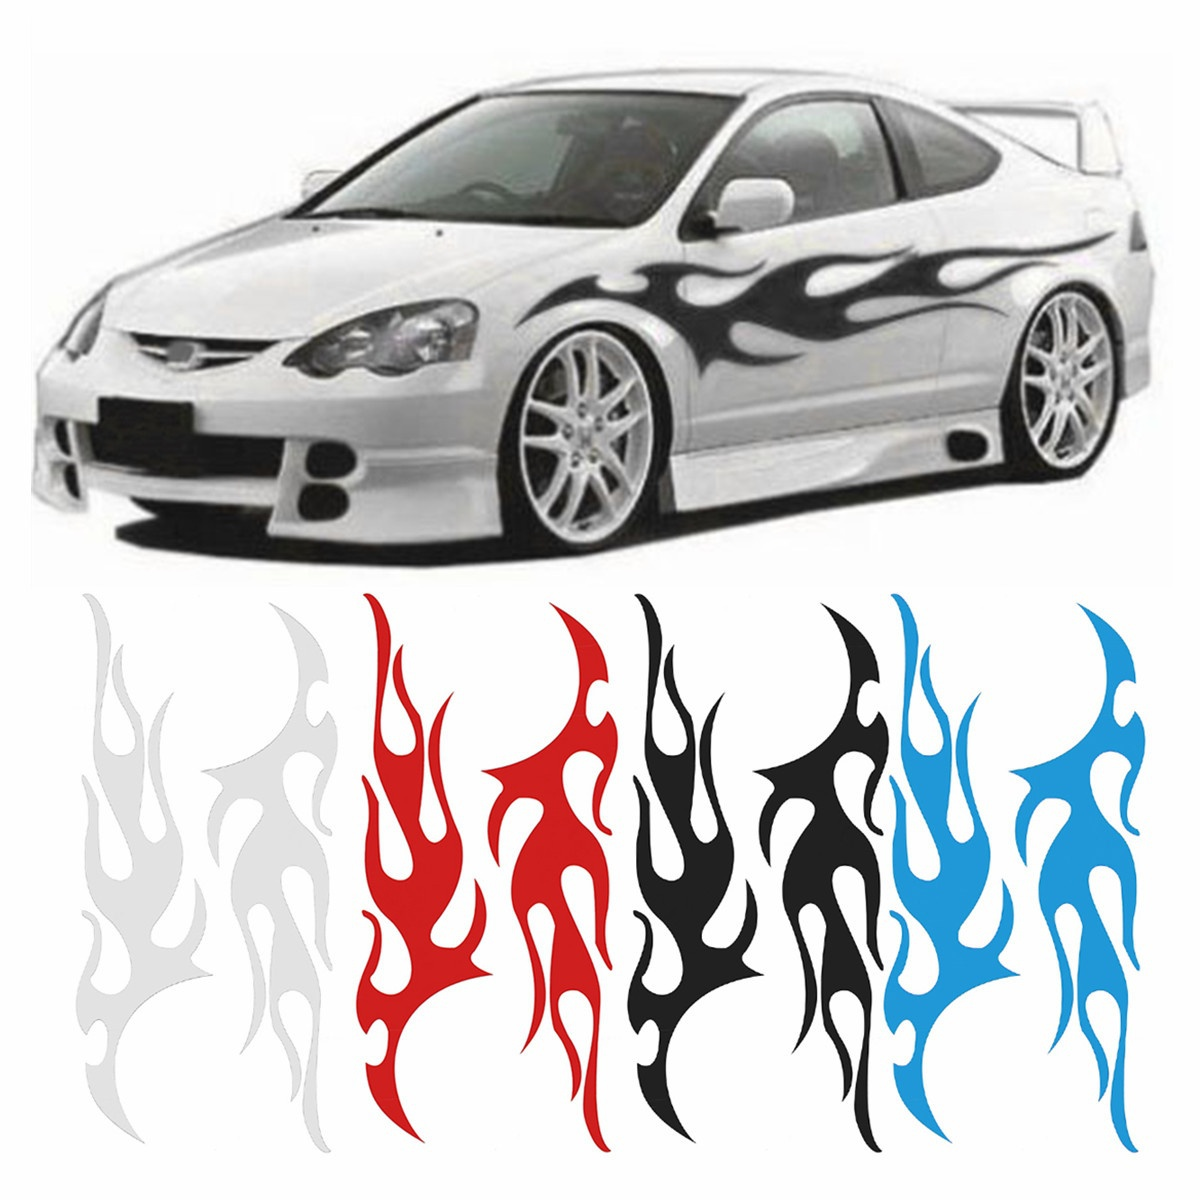 DEDC 1 Pair Large Flame Graphic Decal Flaming for Car Truck Auto Body Hood Panel Window Rear Windshield Car Stickers spider web hood rear window auto car vinyl decal stickers